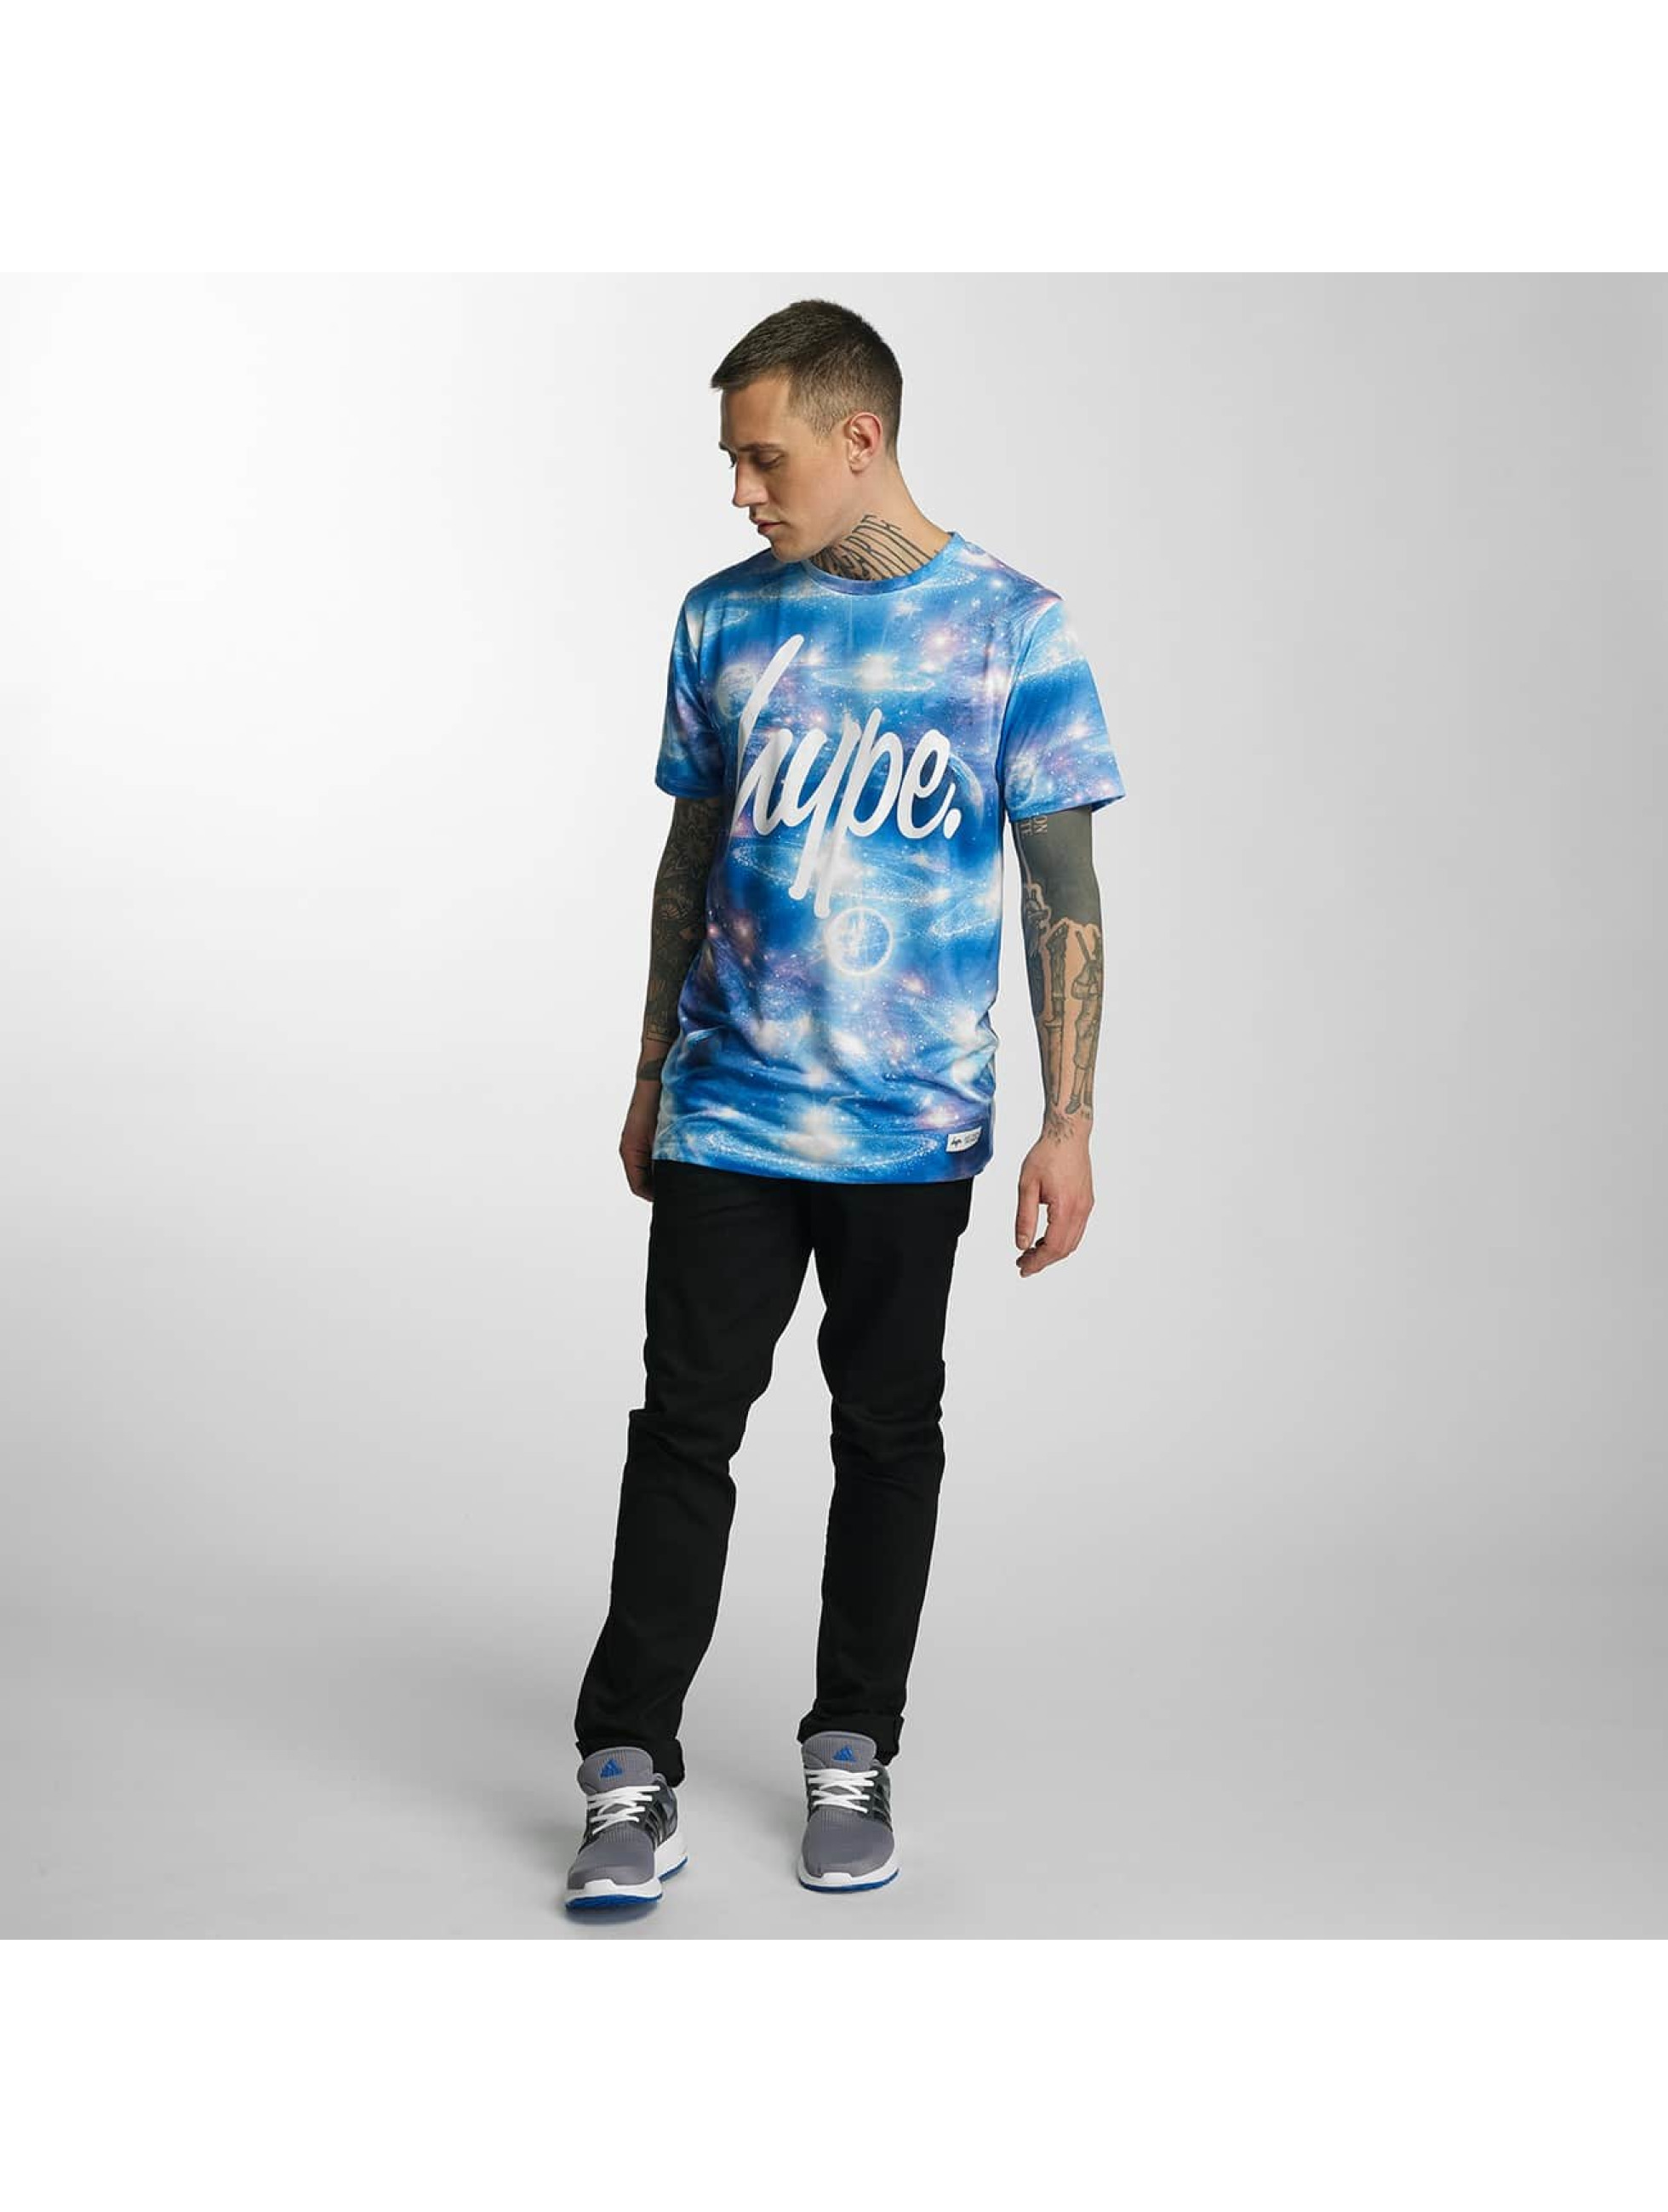 HYPE T-Shirt Cosmo colored